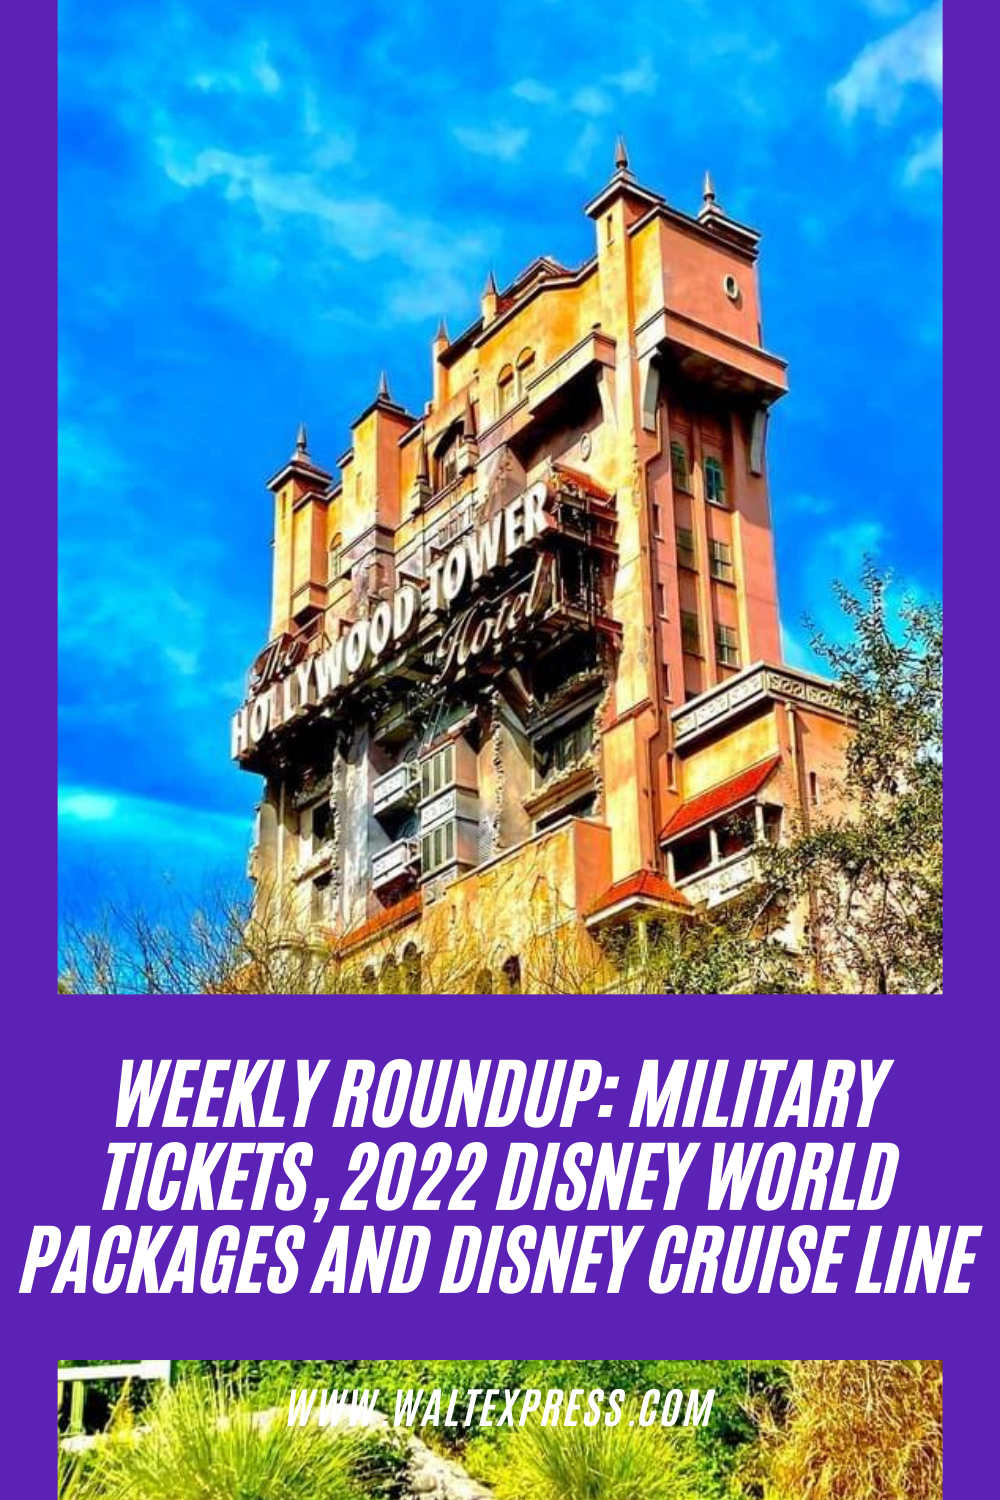 Weekly Roundup:Military Tickets, 2022 Disney World Packages and Disney Cruise Line